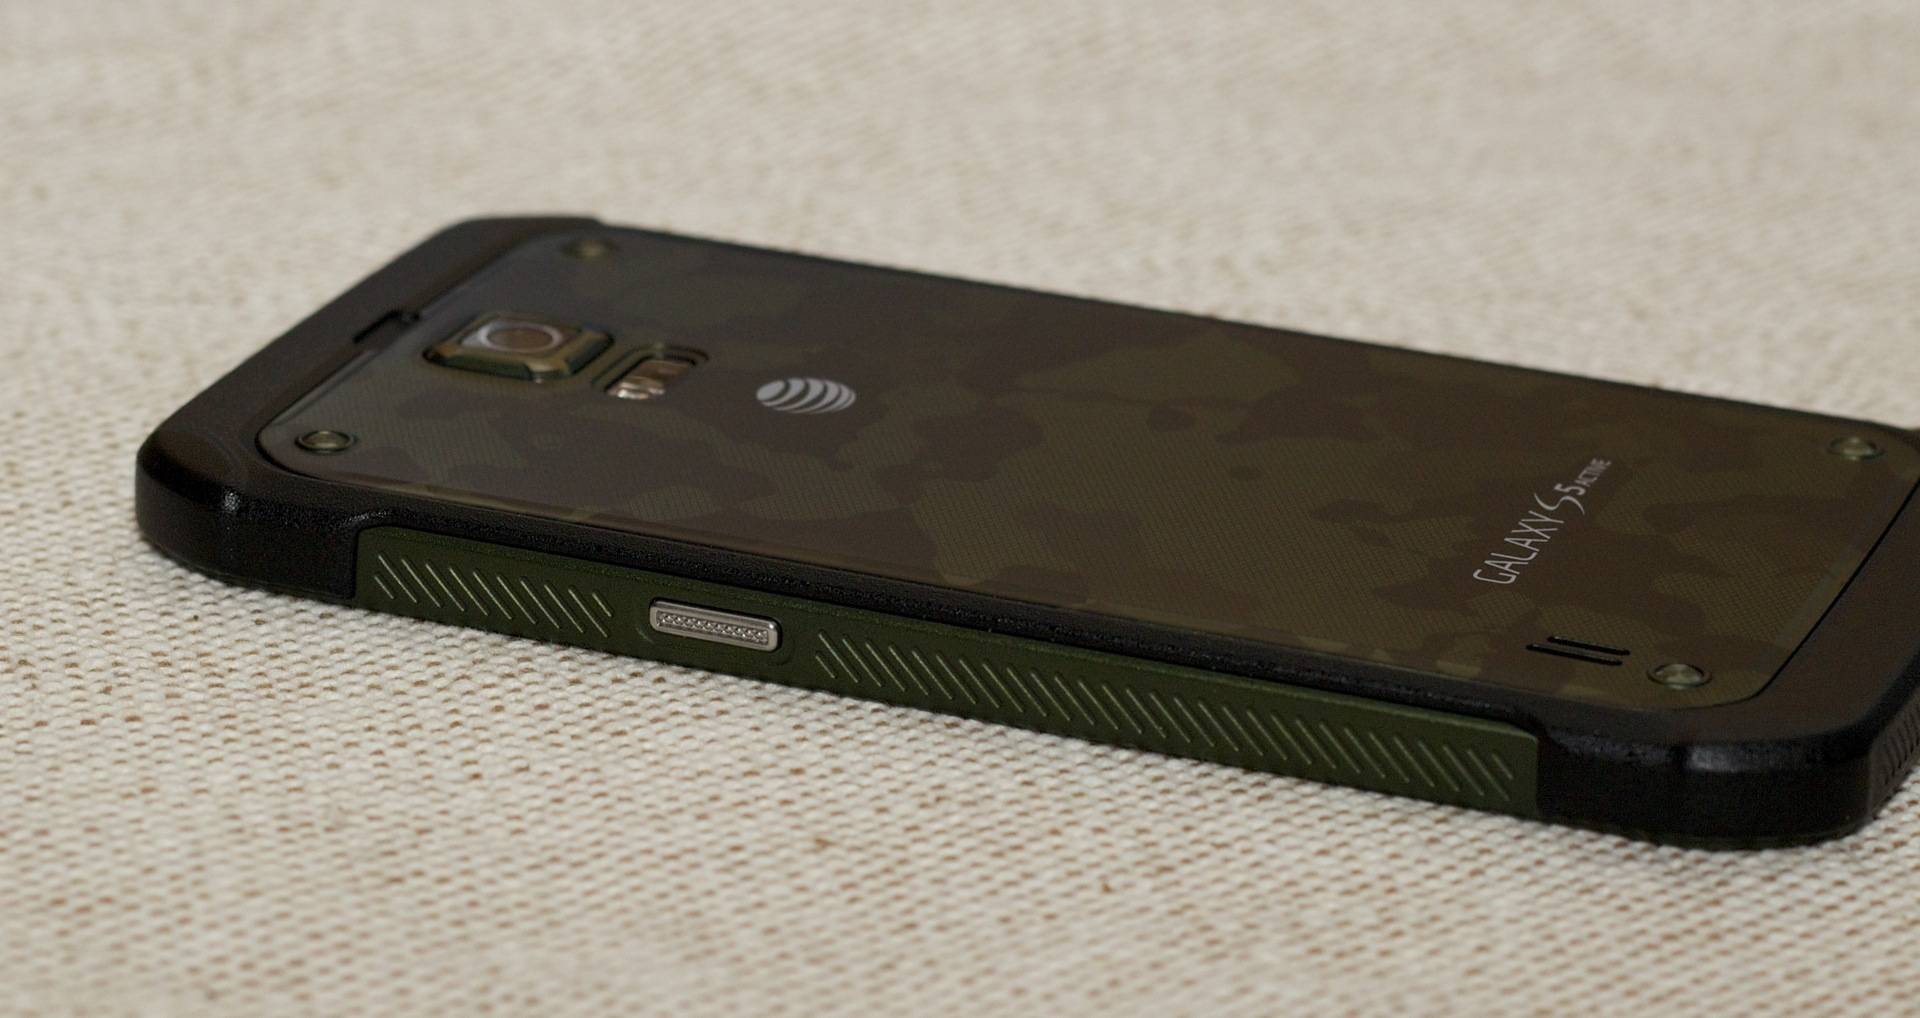 Small divots on the phone's side make it easier to grip.